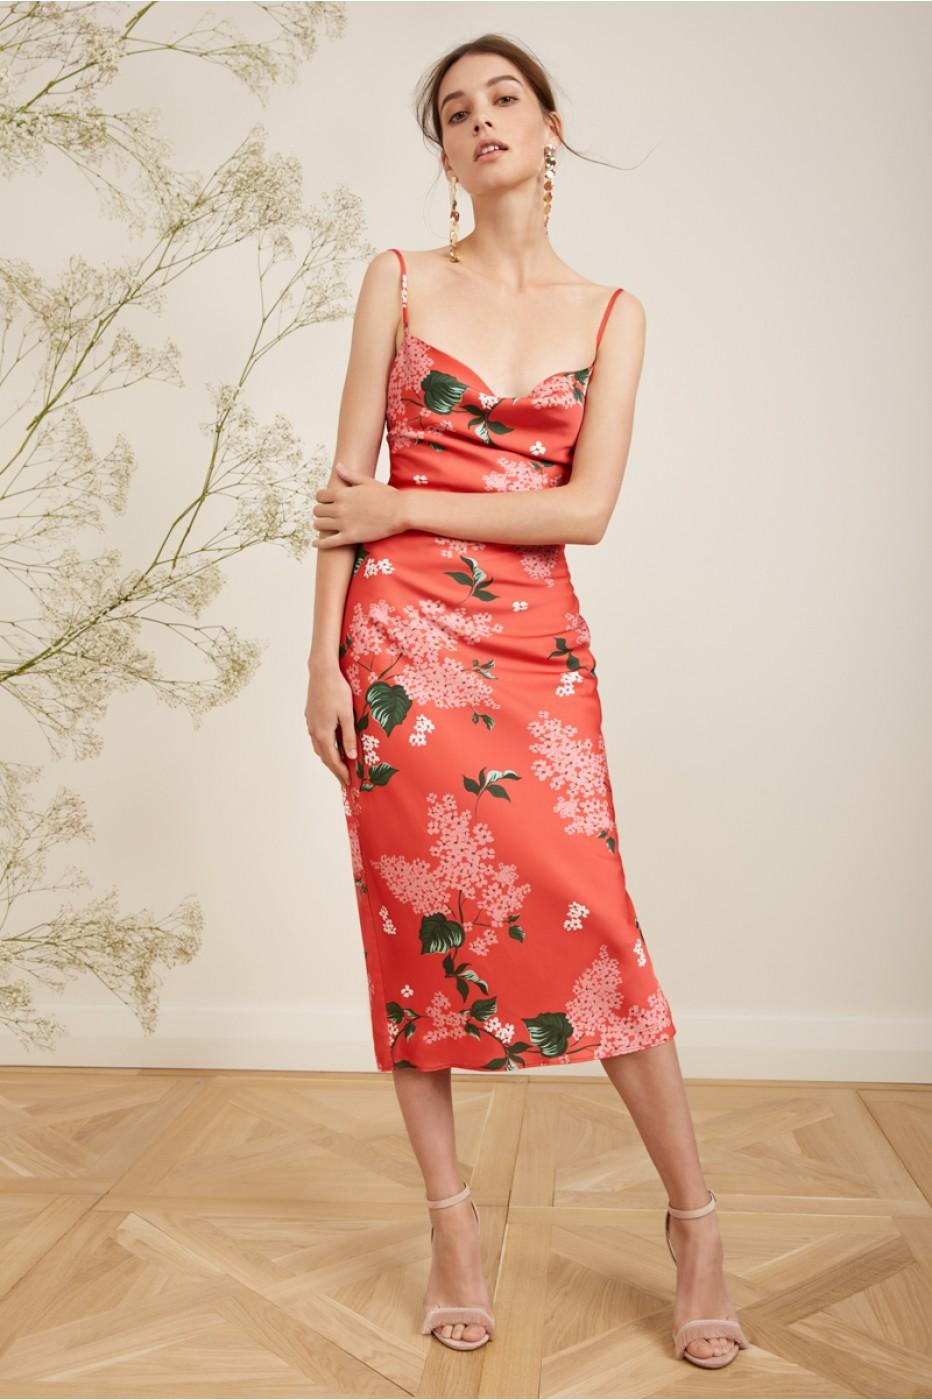 96c1c5eaa469 Keepsake This Moment Slip Dress In Pop Red Floral | ModeSens